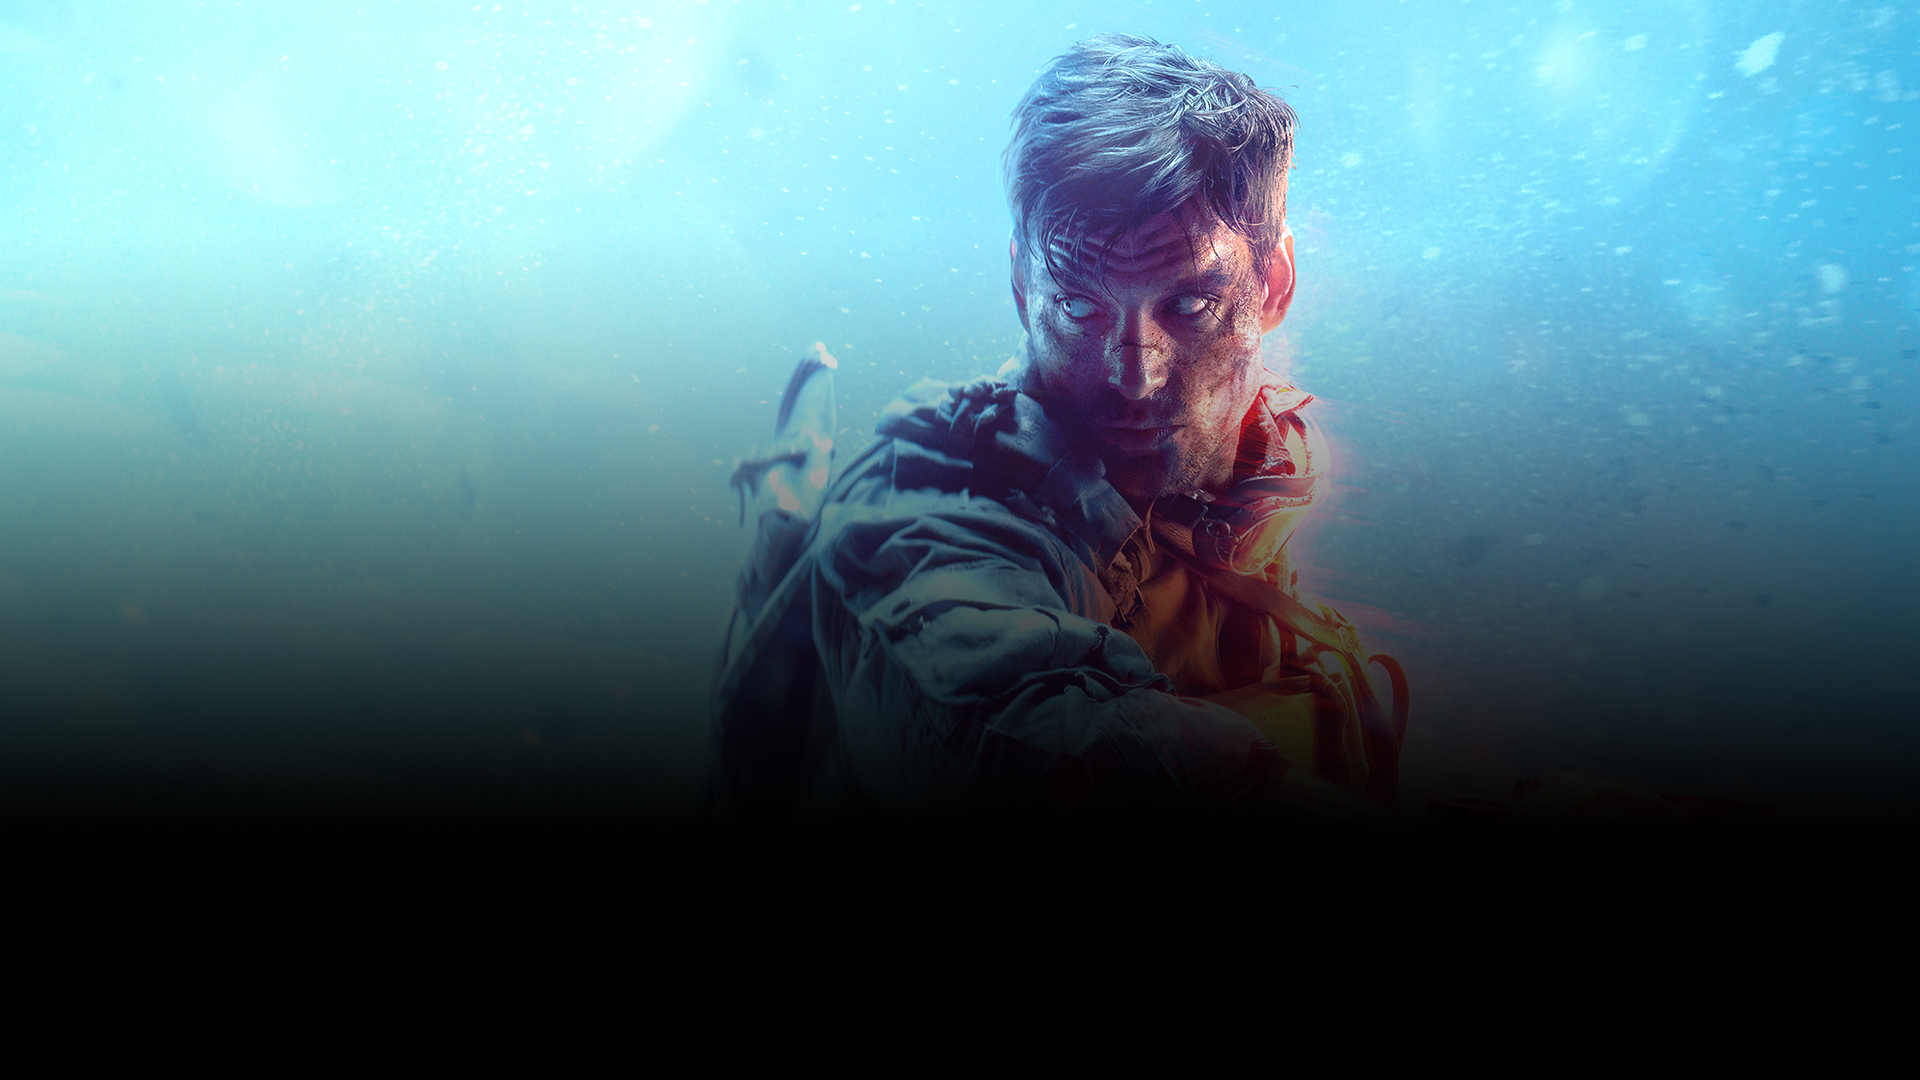 Battlefield V Soldier Hd Games 4k Wallpapers Images